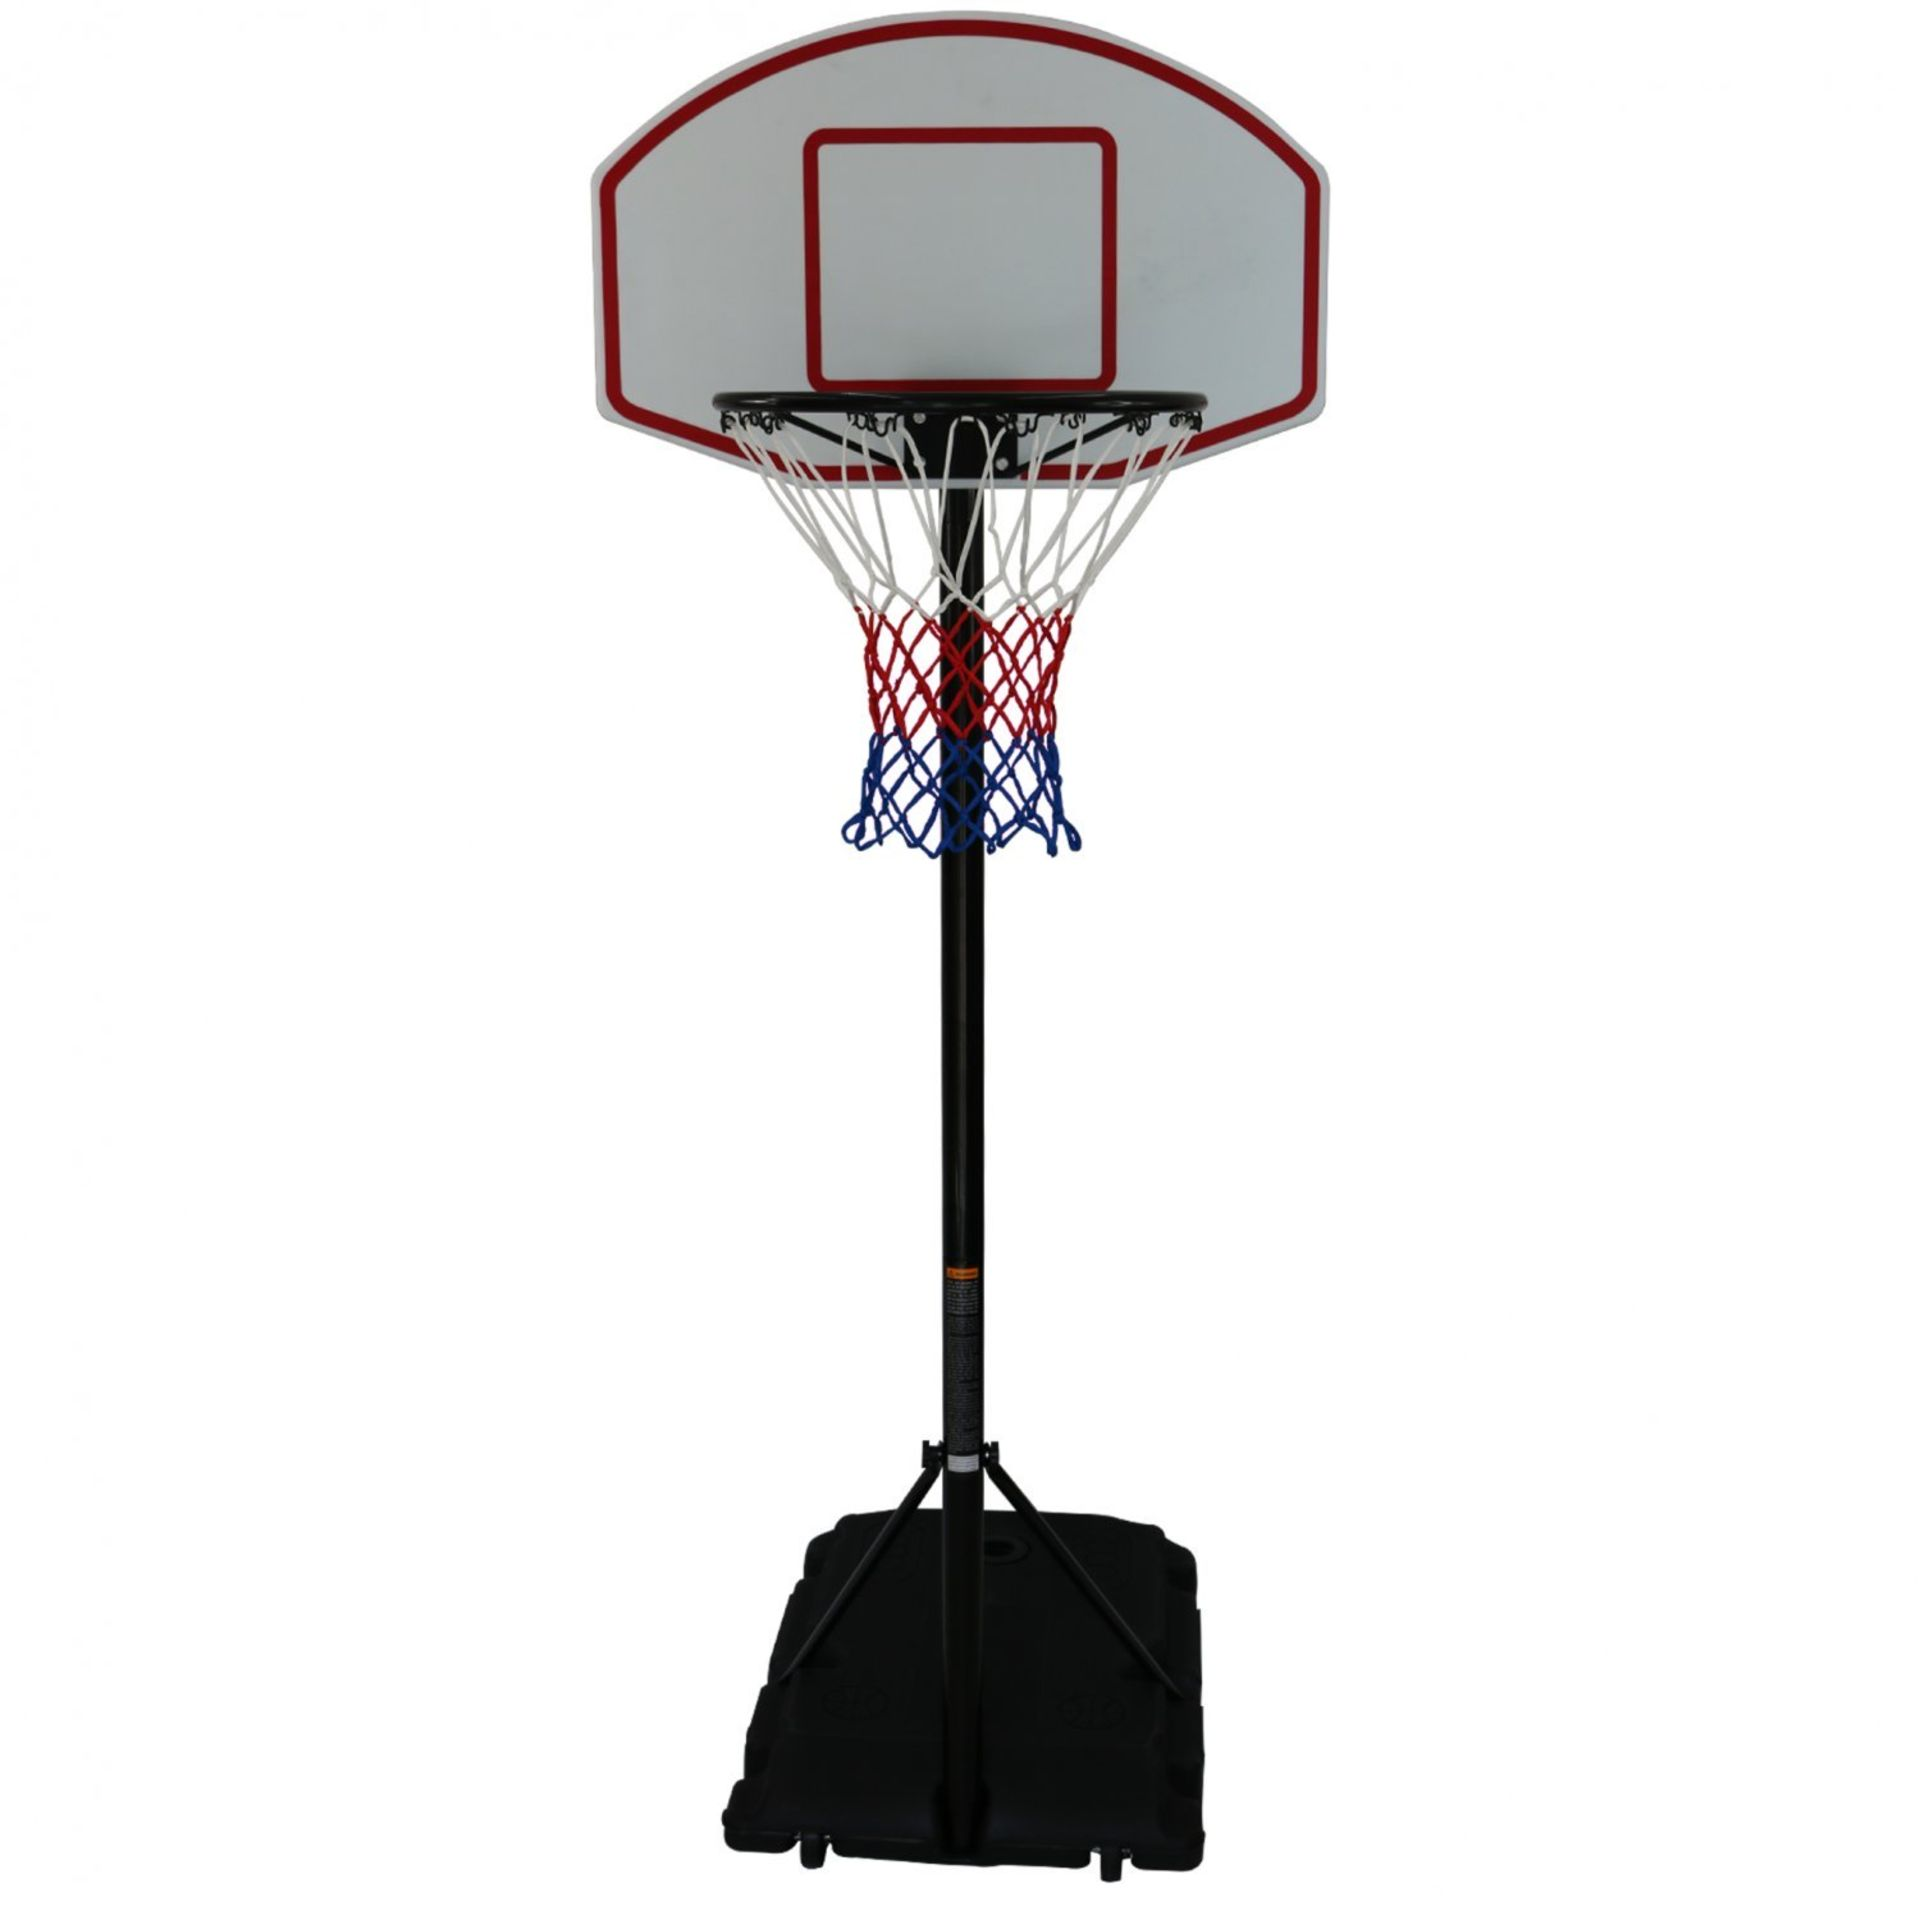 Lot 51 - (RU35) Pro Spec Adjustable Basketball Net Set Any true basketball fan should have their...